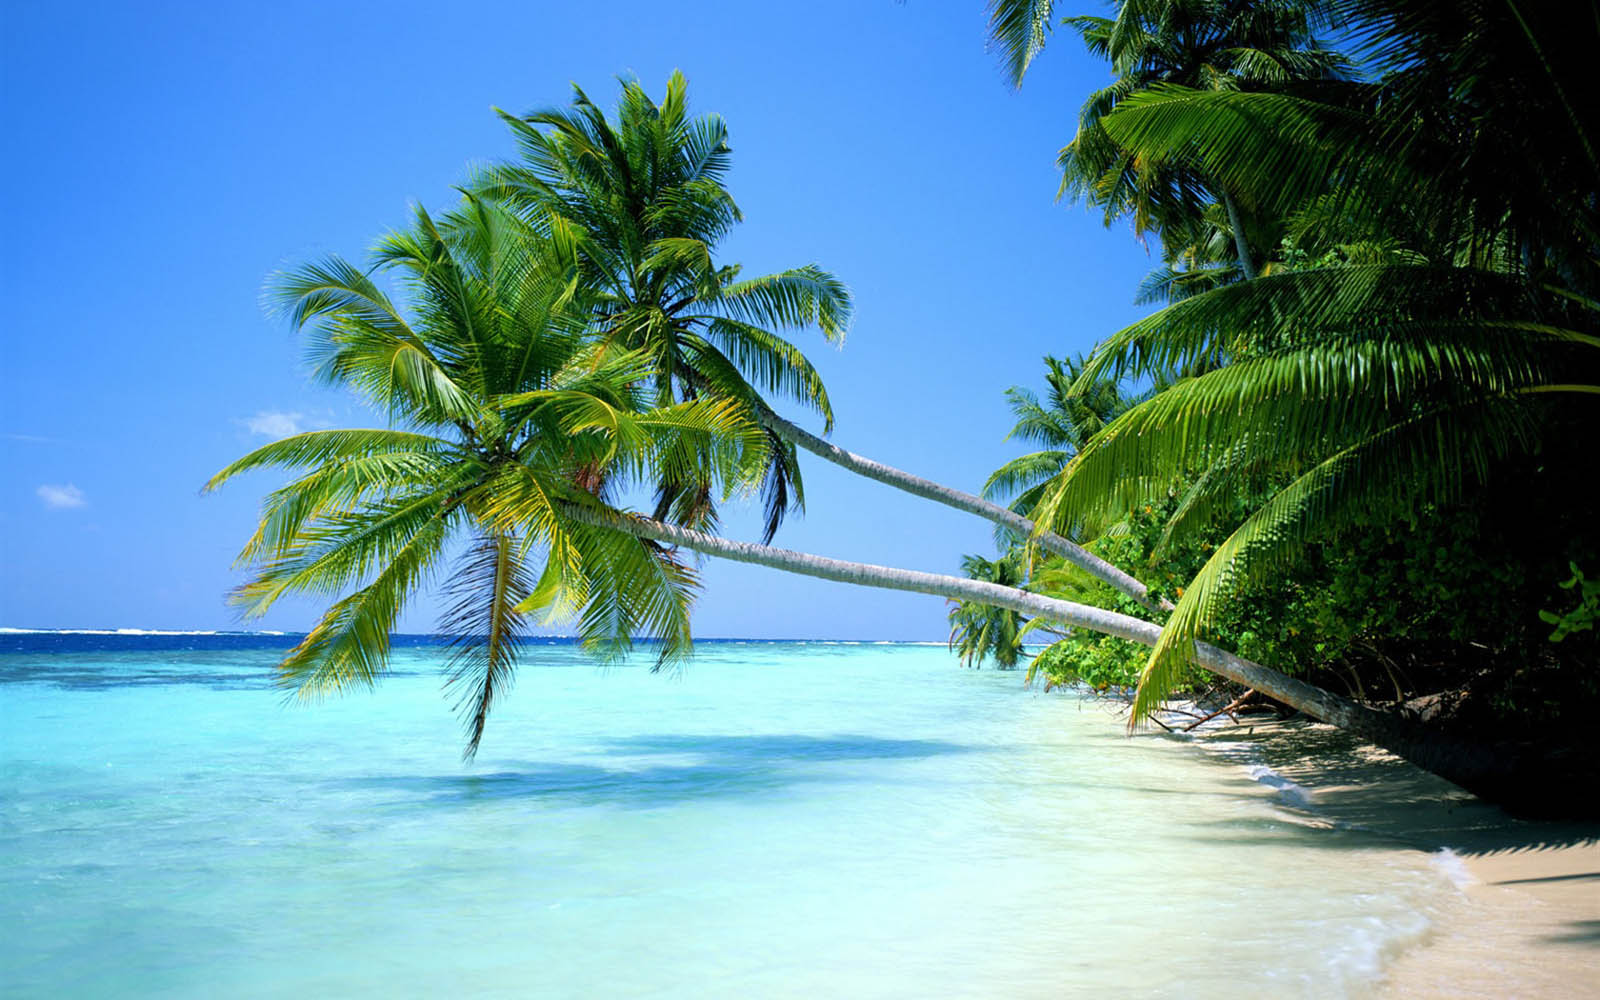 Tag Coconut Tree Wallpapers BackgroundsPhotos Images and Pictures 1600x1000